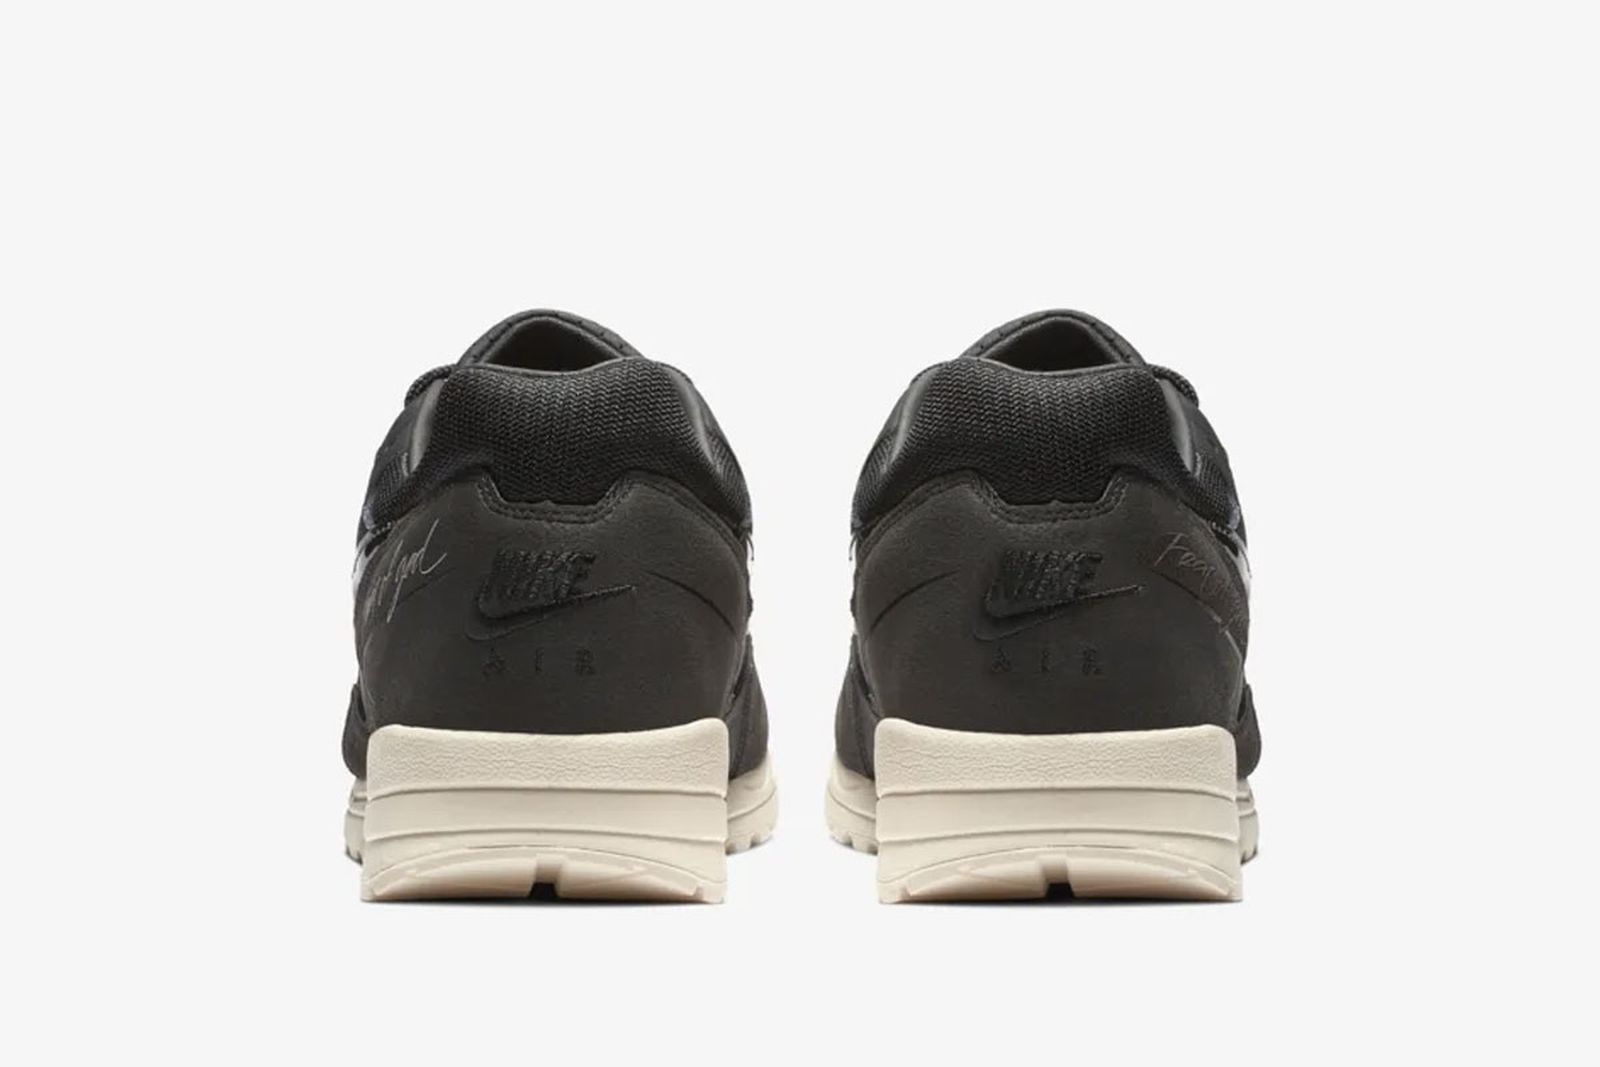 fear of god nike air skylon 2 release date price black Jerry Lorenzo